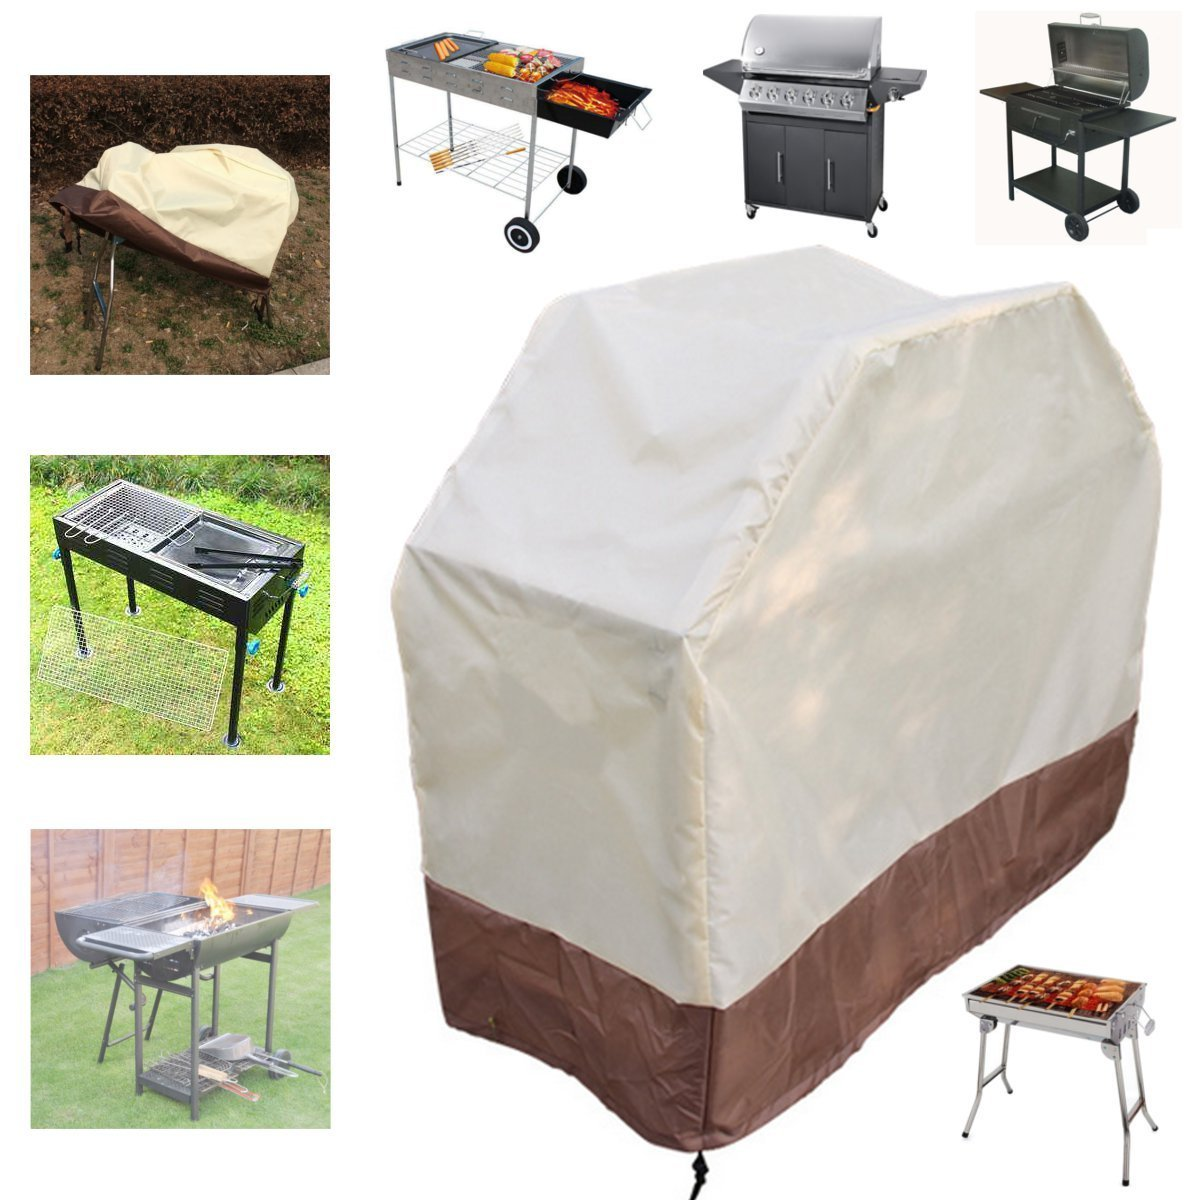 Wrap Grill Gas Barbecue Covers Outdoor Picnic & Bbq - 180x56x110cm Bbq Grill Gas Barbecue Waterproof Covers Garden Outdoor Cooking Protector - Cut Through Gasolene Encompass - 1PCs